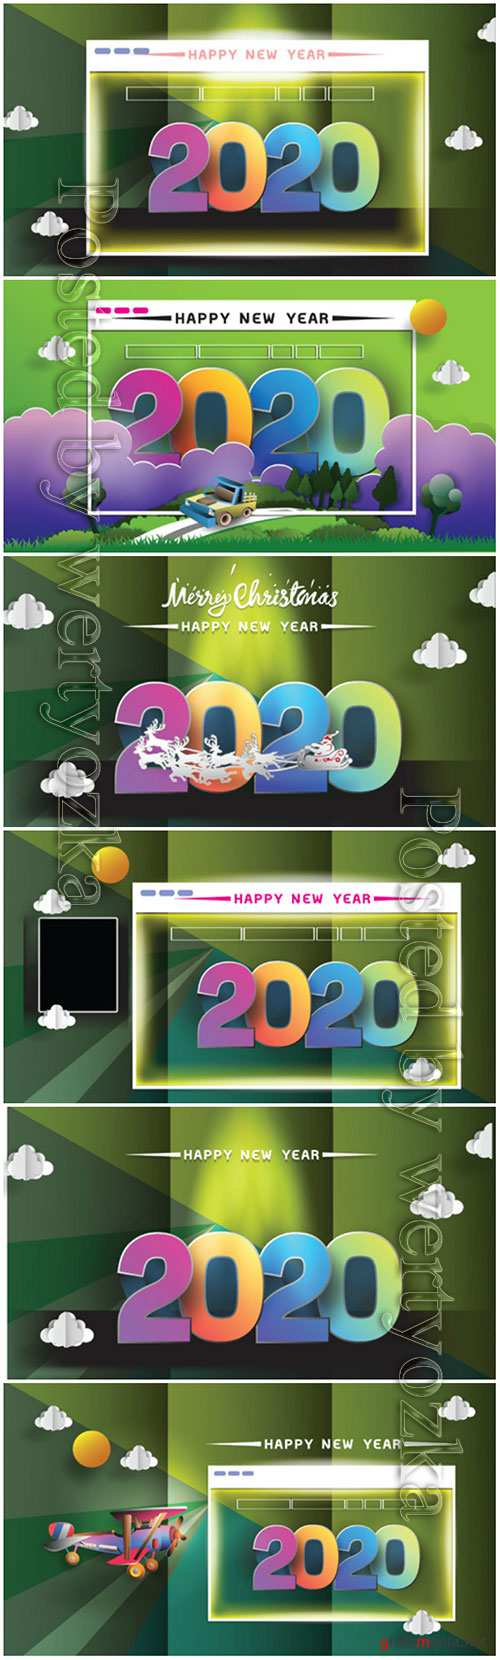 2020 New Year holidays cards, Christmas greetings invitations